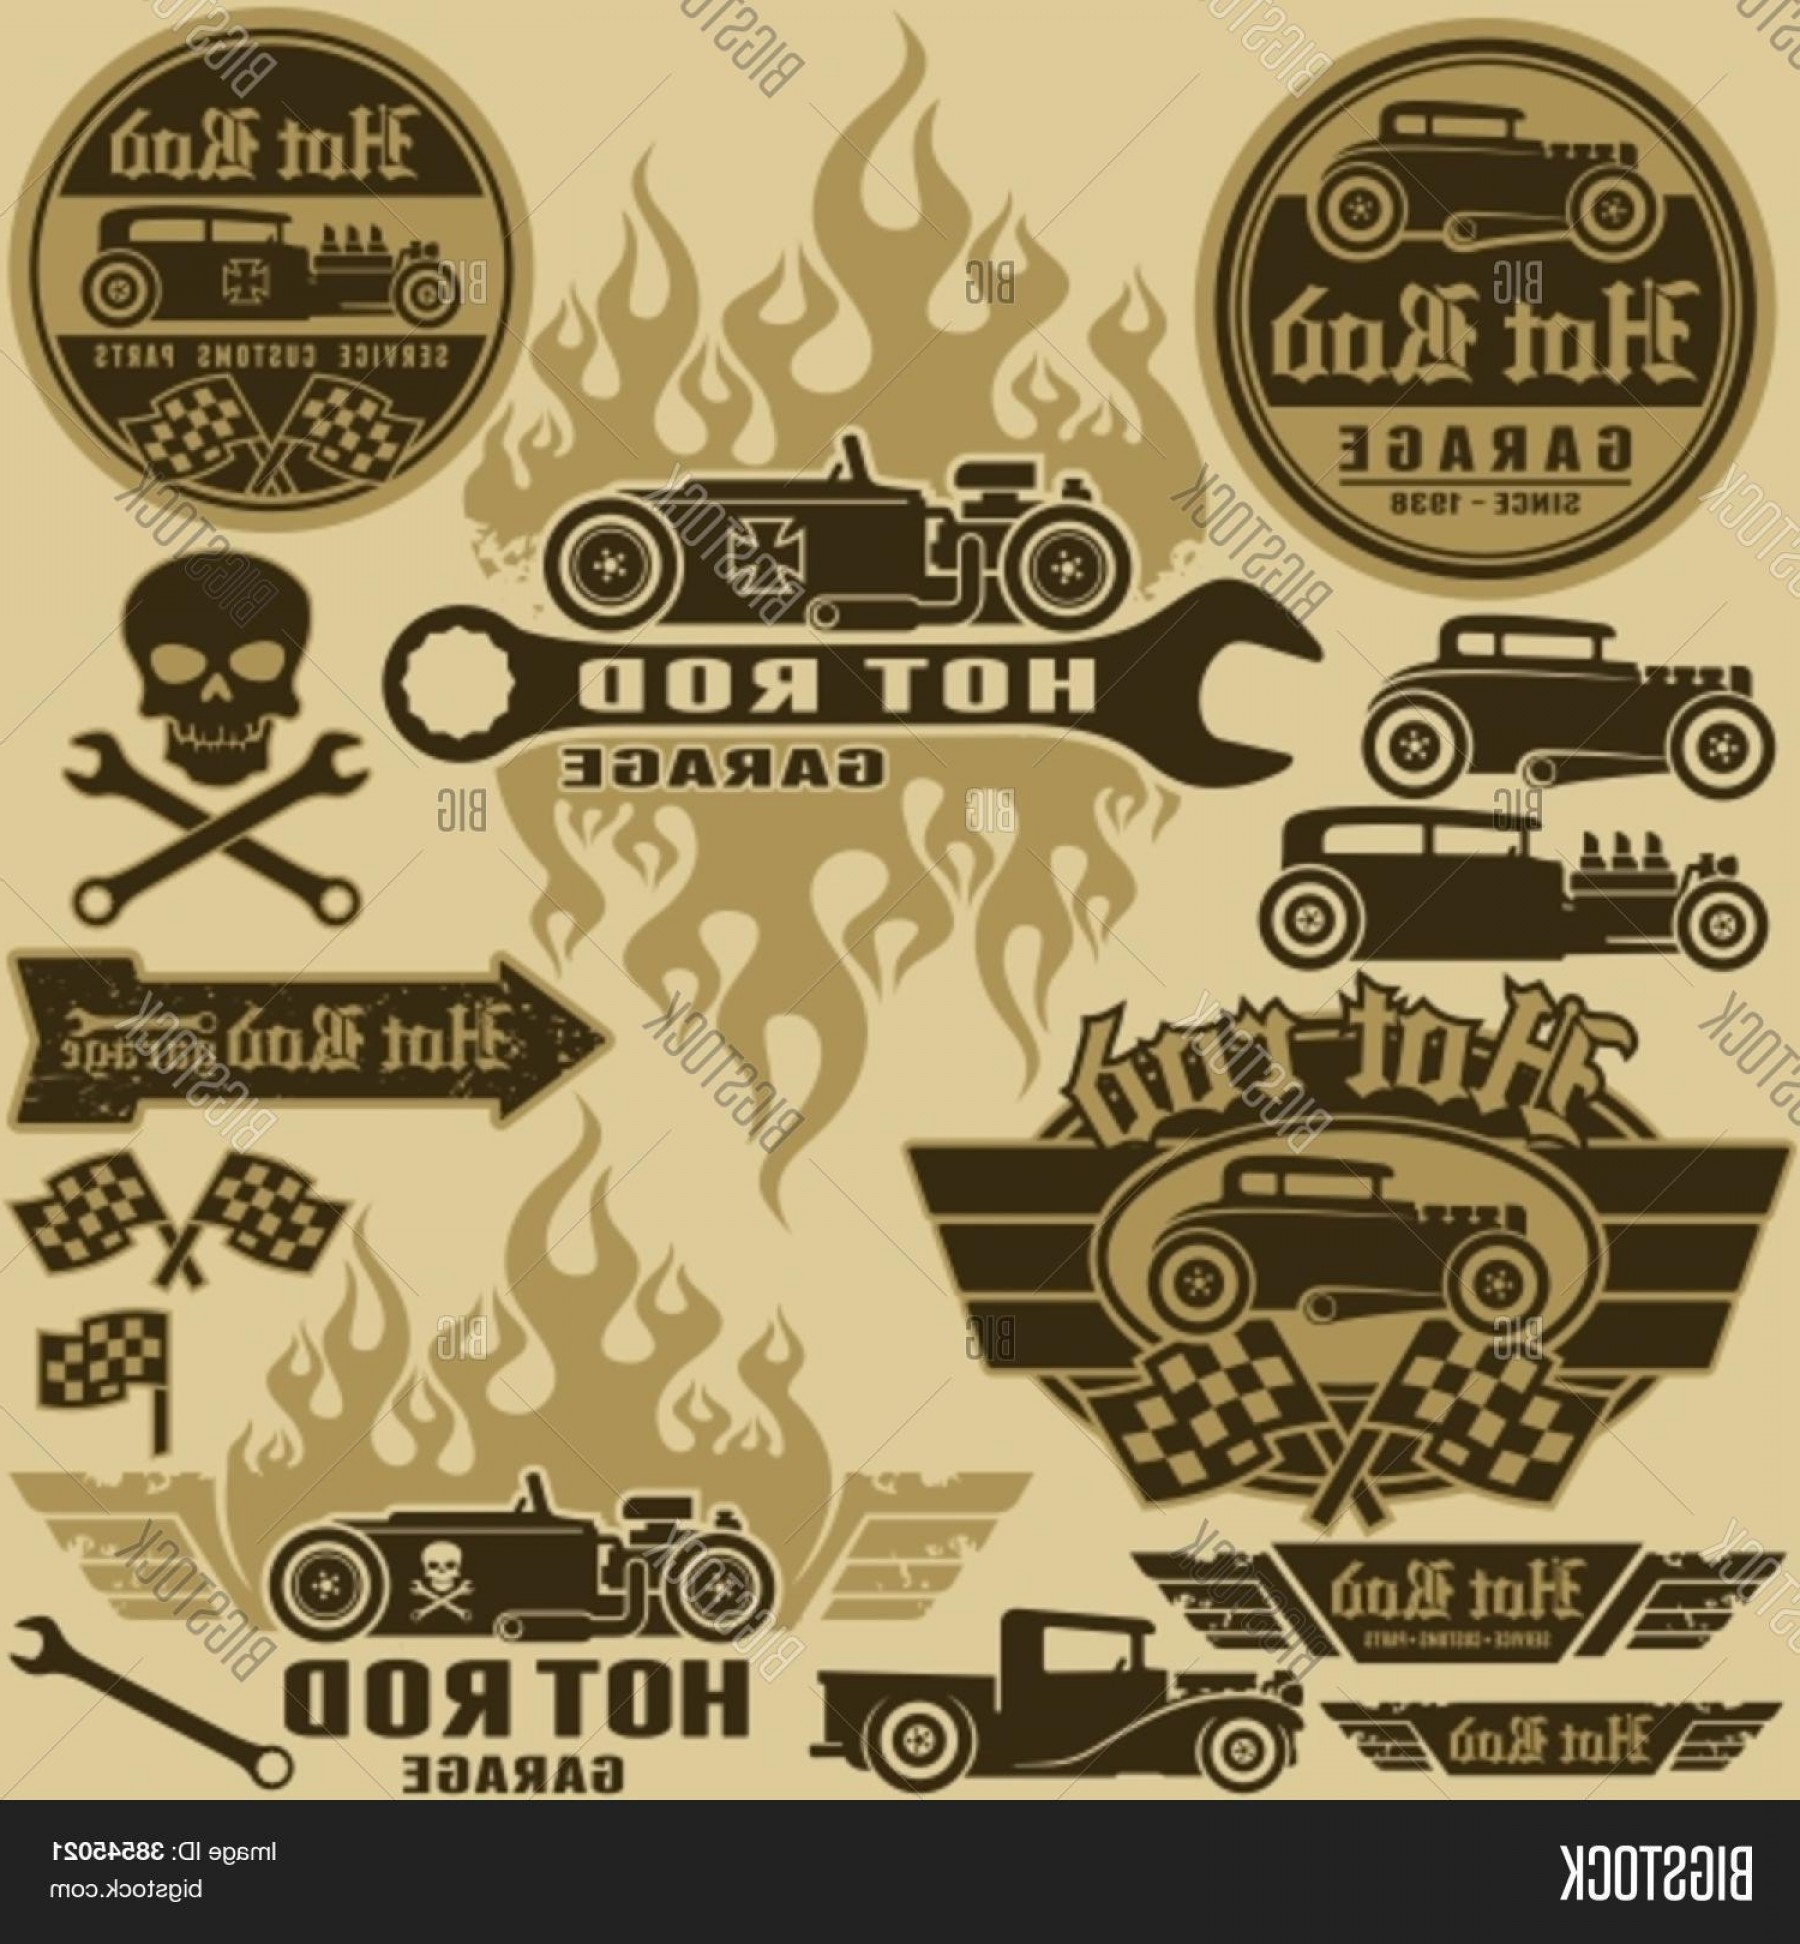 Classic Street Rod Vector Art: Stock Vector Hot Rod Style Labels And Signs Set Vector Design Elements